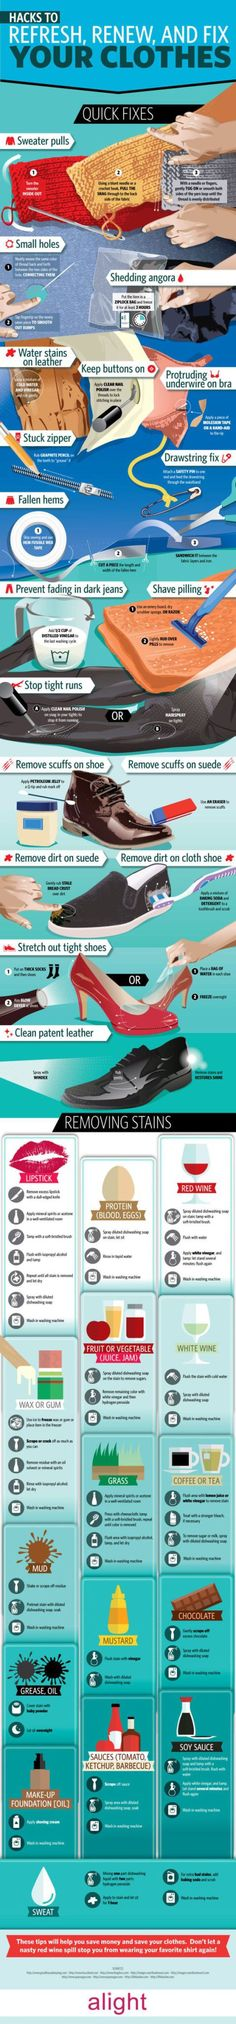 10 Clothing Hacks and Tips that will save you money. ~ re-pinned ~